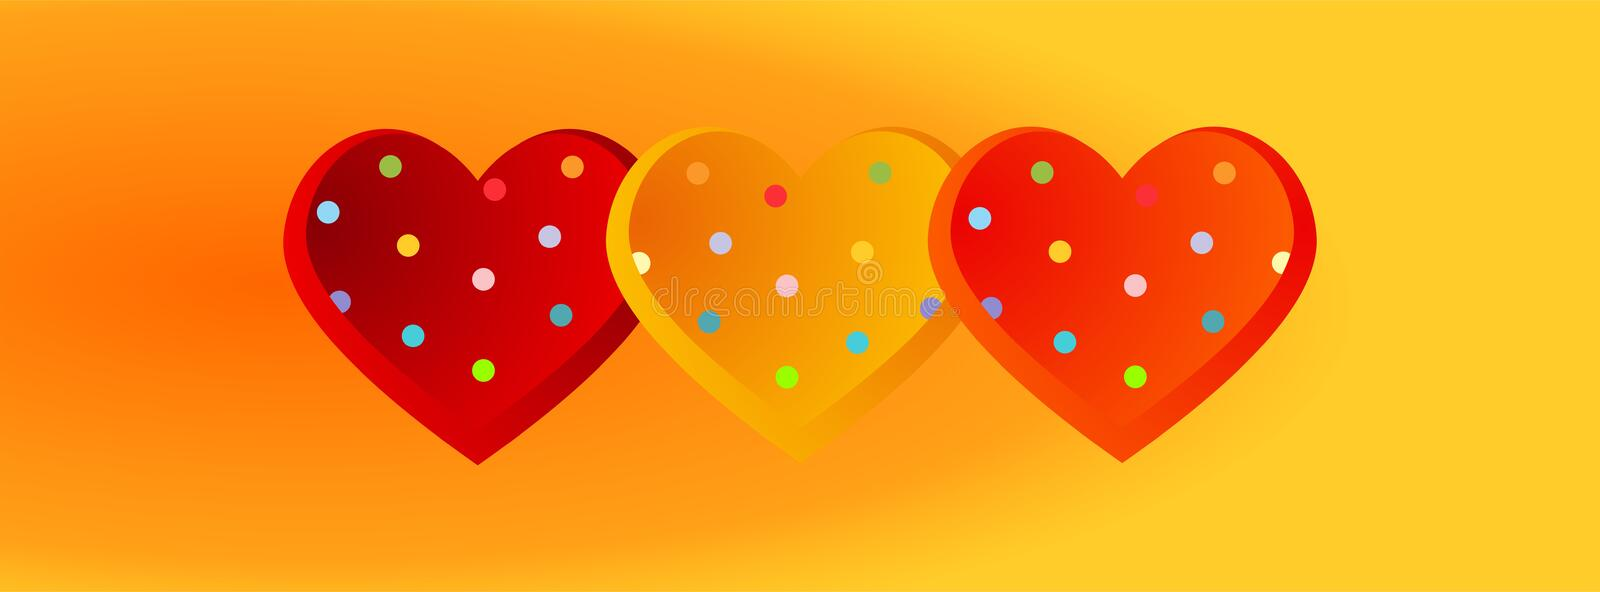 Valentine banners with Polka Dots hearts  - Facebook cover, -vector stock illustration